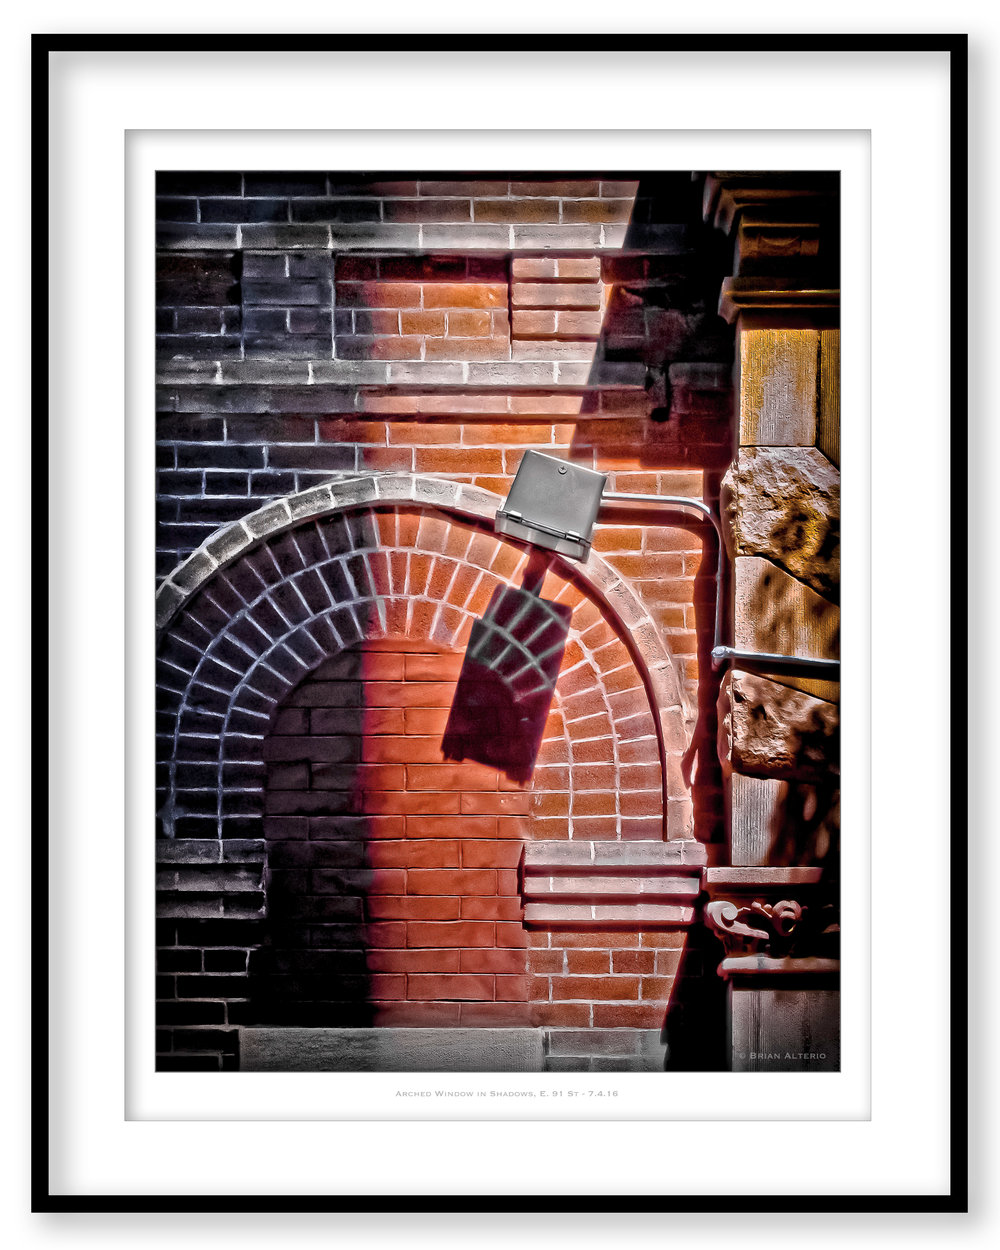 Arched Window in Shadows, E. 91 St - 7.4.16 - Framed.jpg